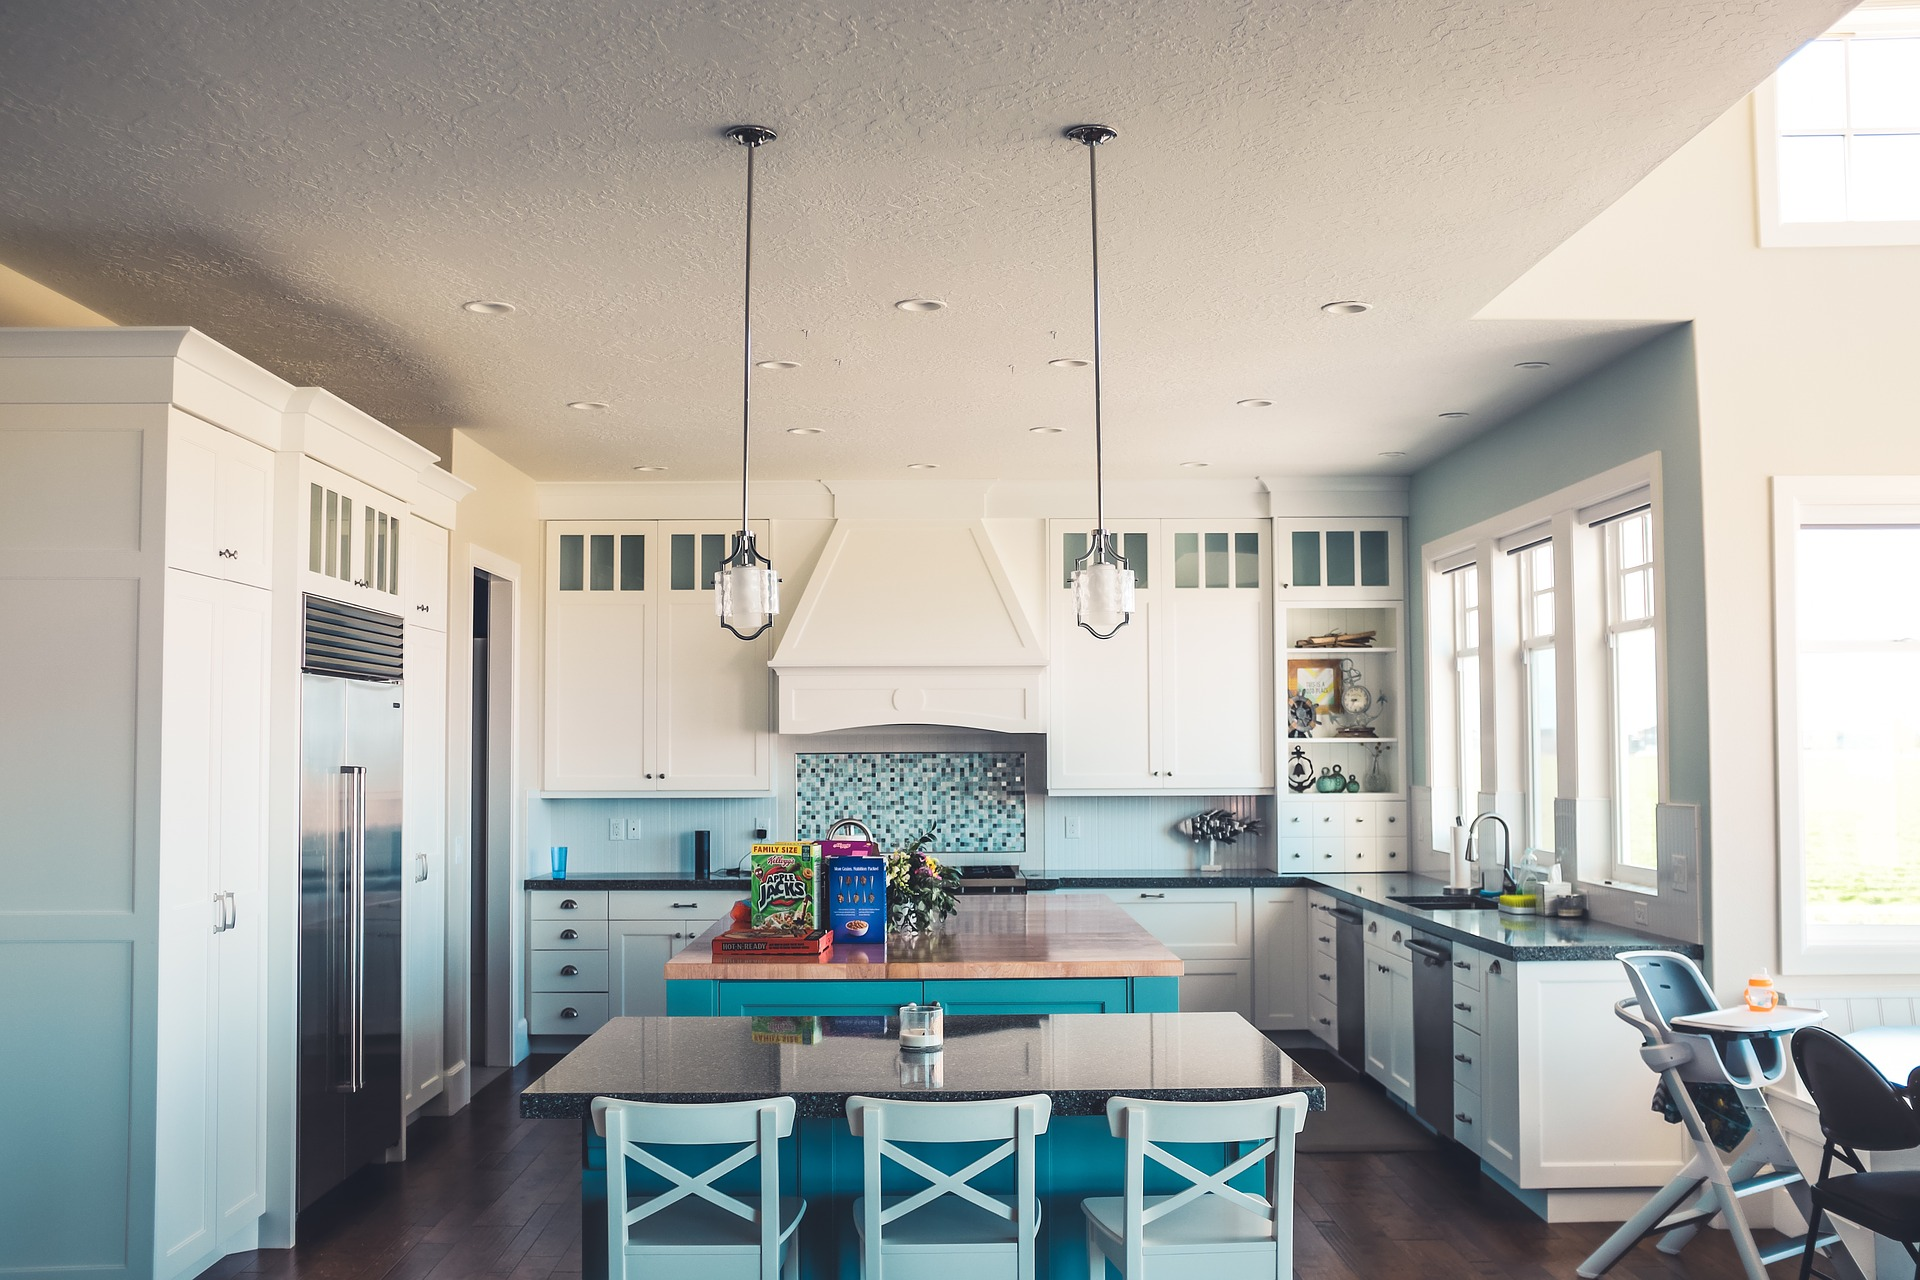 Remodeled kitchen in white and aqua blue with new appliances on the One Stop Plumbing page for Plumbing Remodeling